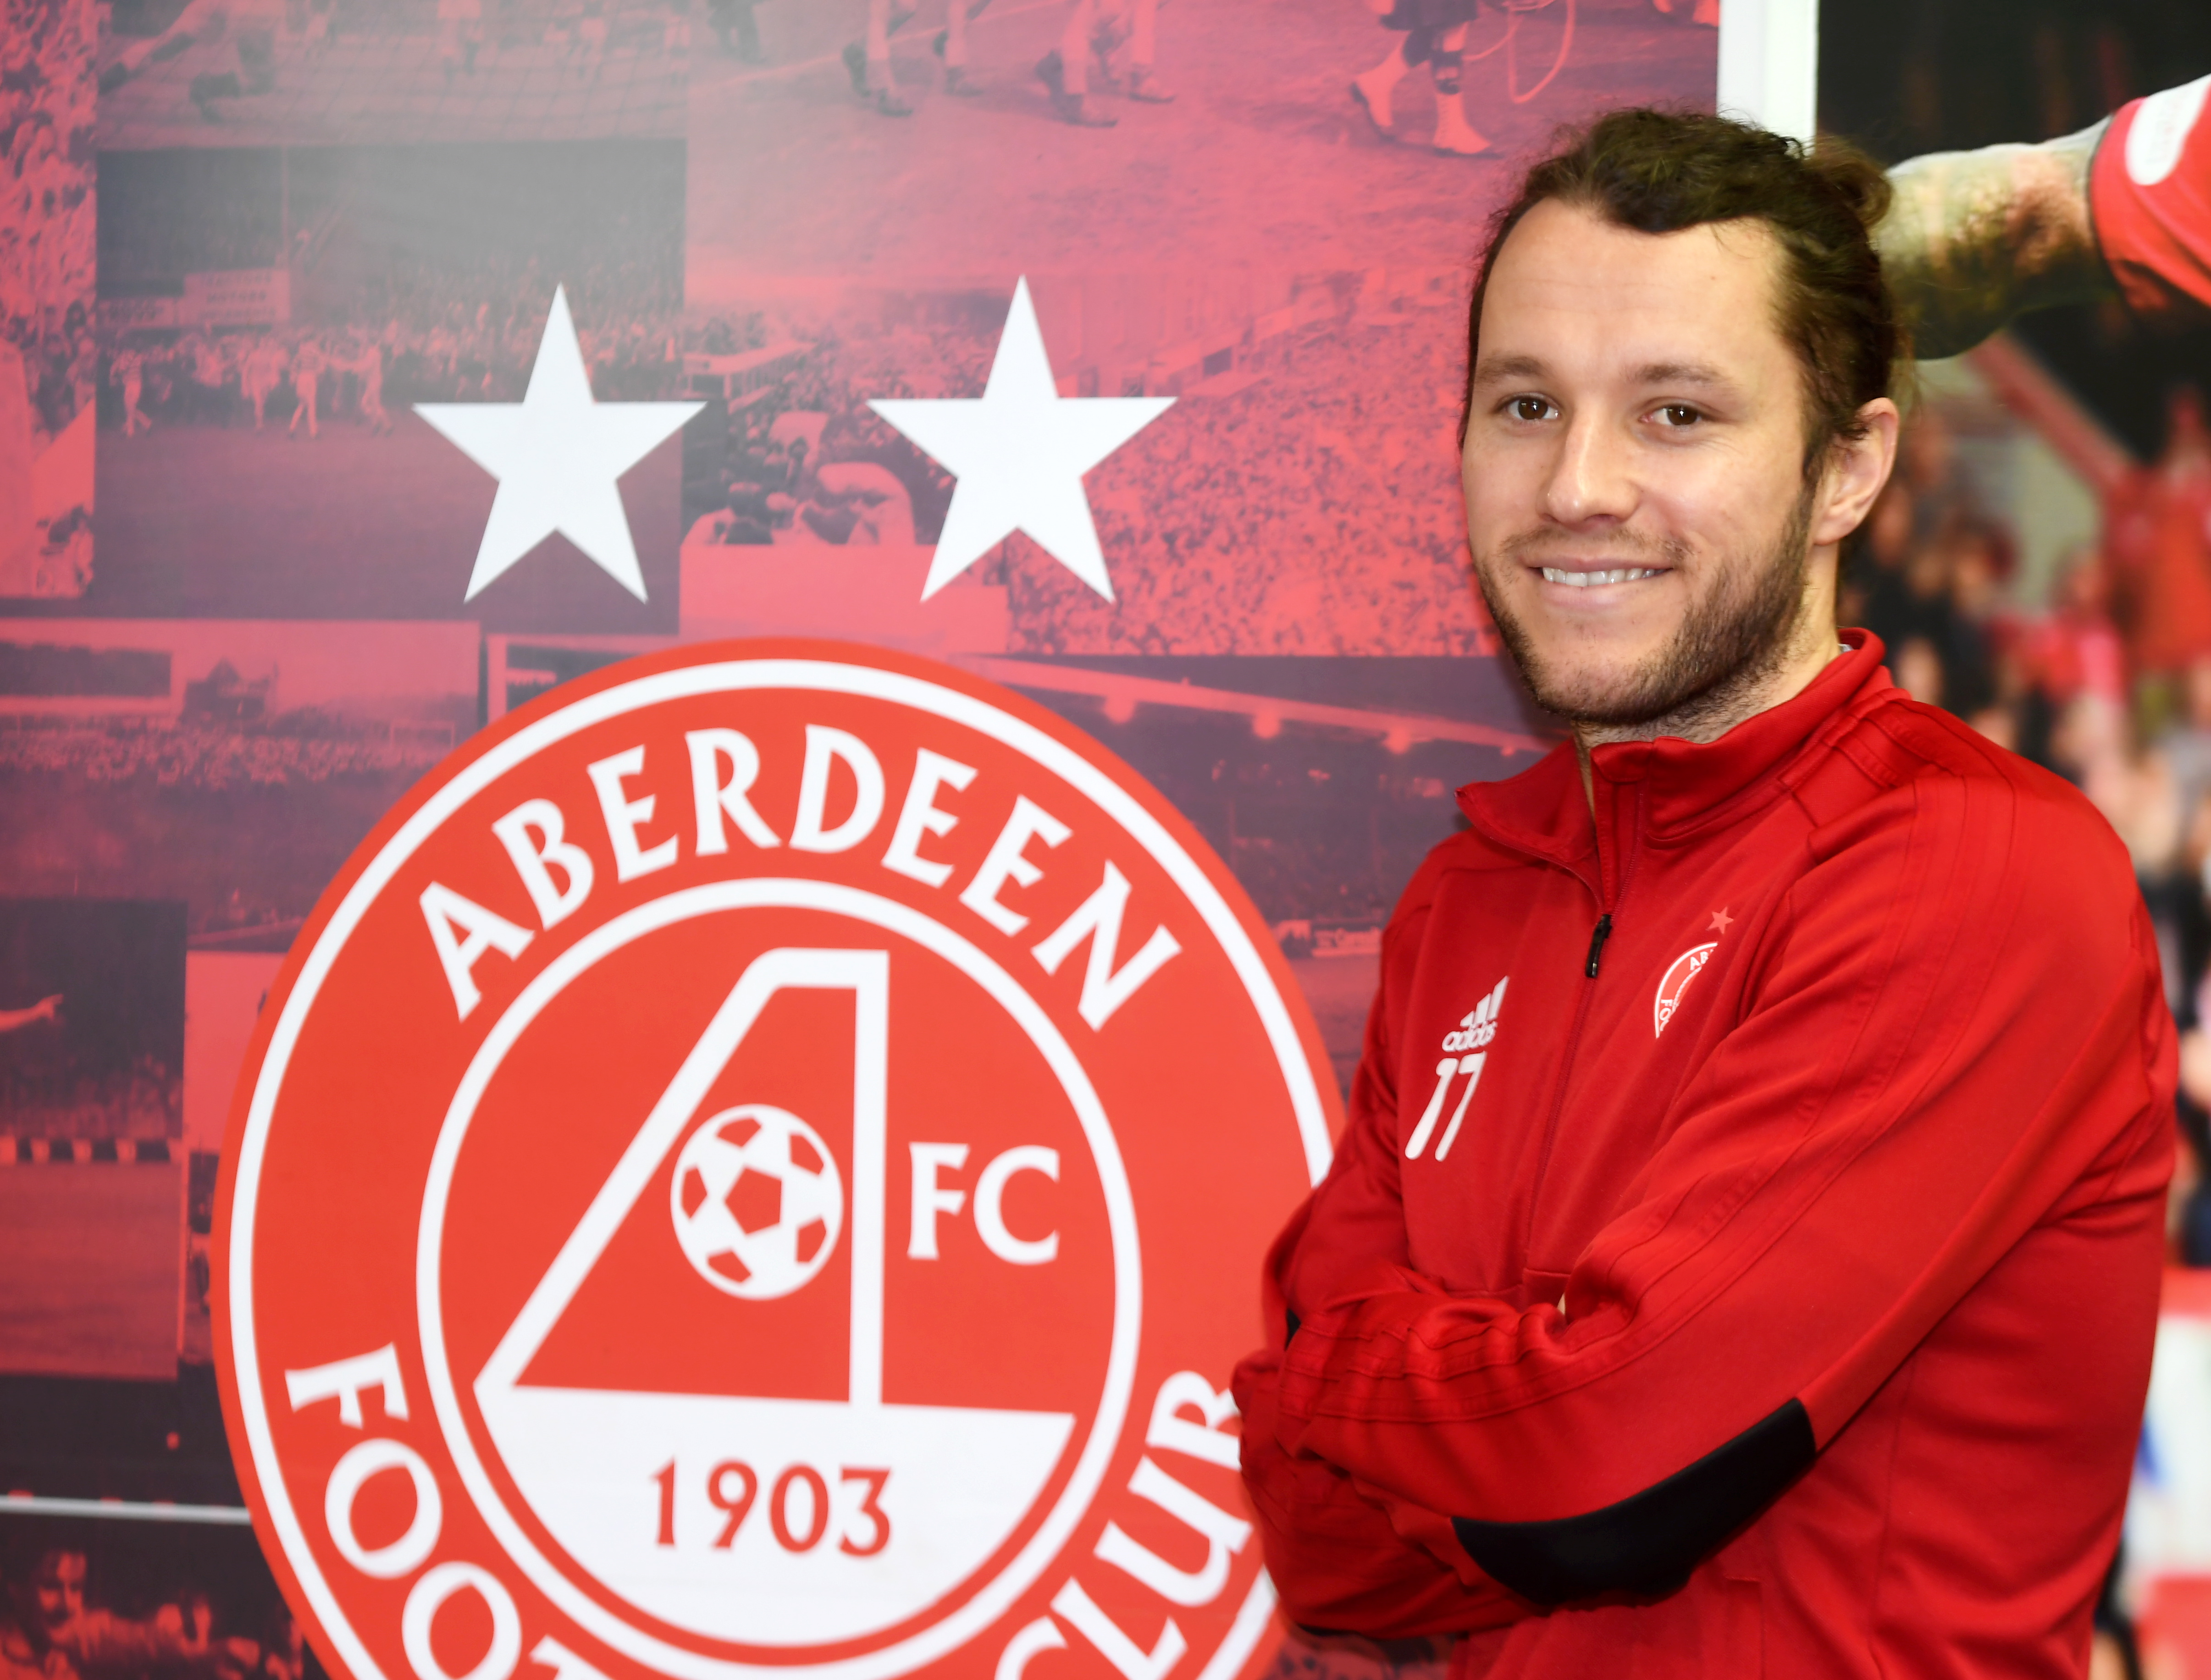 Aberdeen FC's Stevie May. CR0007012 Pic by Chris Sumner Taken 15/3/19